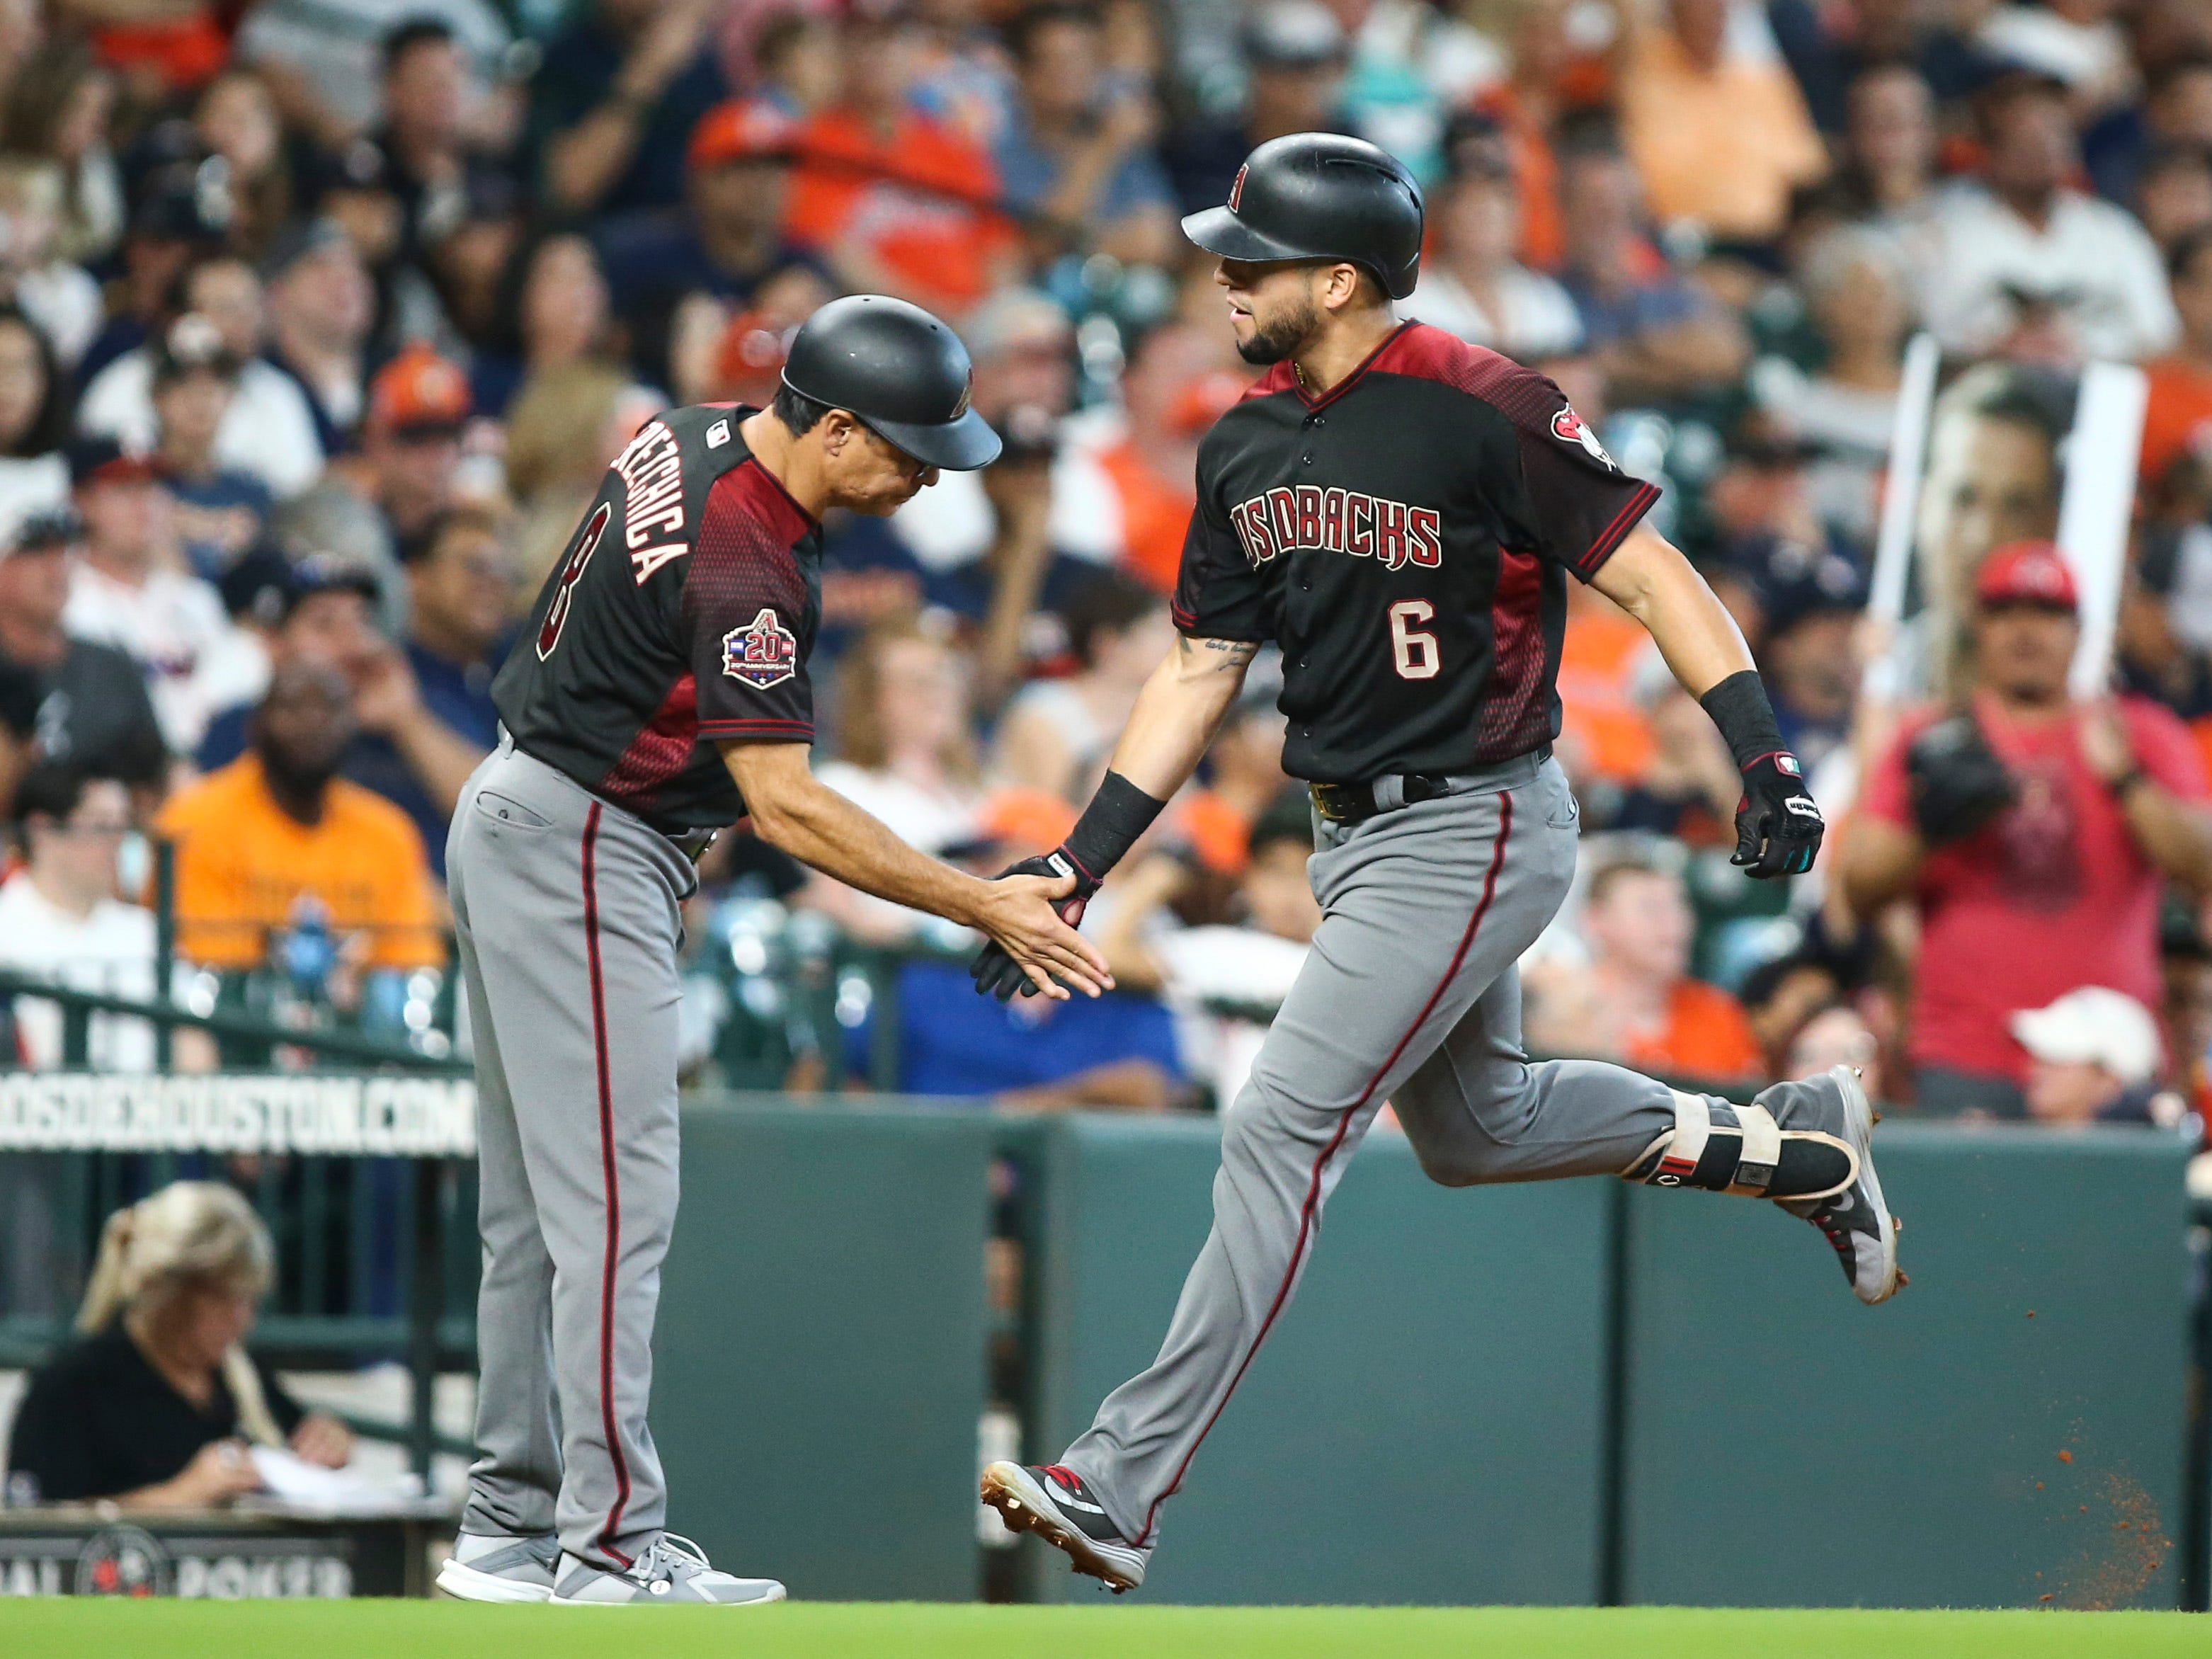 Sep 16, 2018; Houston, TX, USA; Arizona Diamondbacks left fielder David Peralta (6) celebrates with third base coach Tony Perezchica (8) after hitting a home run during the sixth inning against the Houston Astros at Minute Maid Park. Mandatory Credit: Troy Taormina-USA TODAY Sports